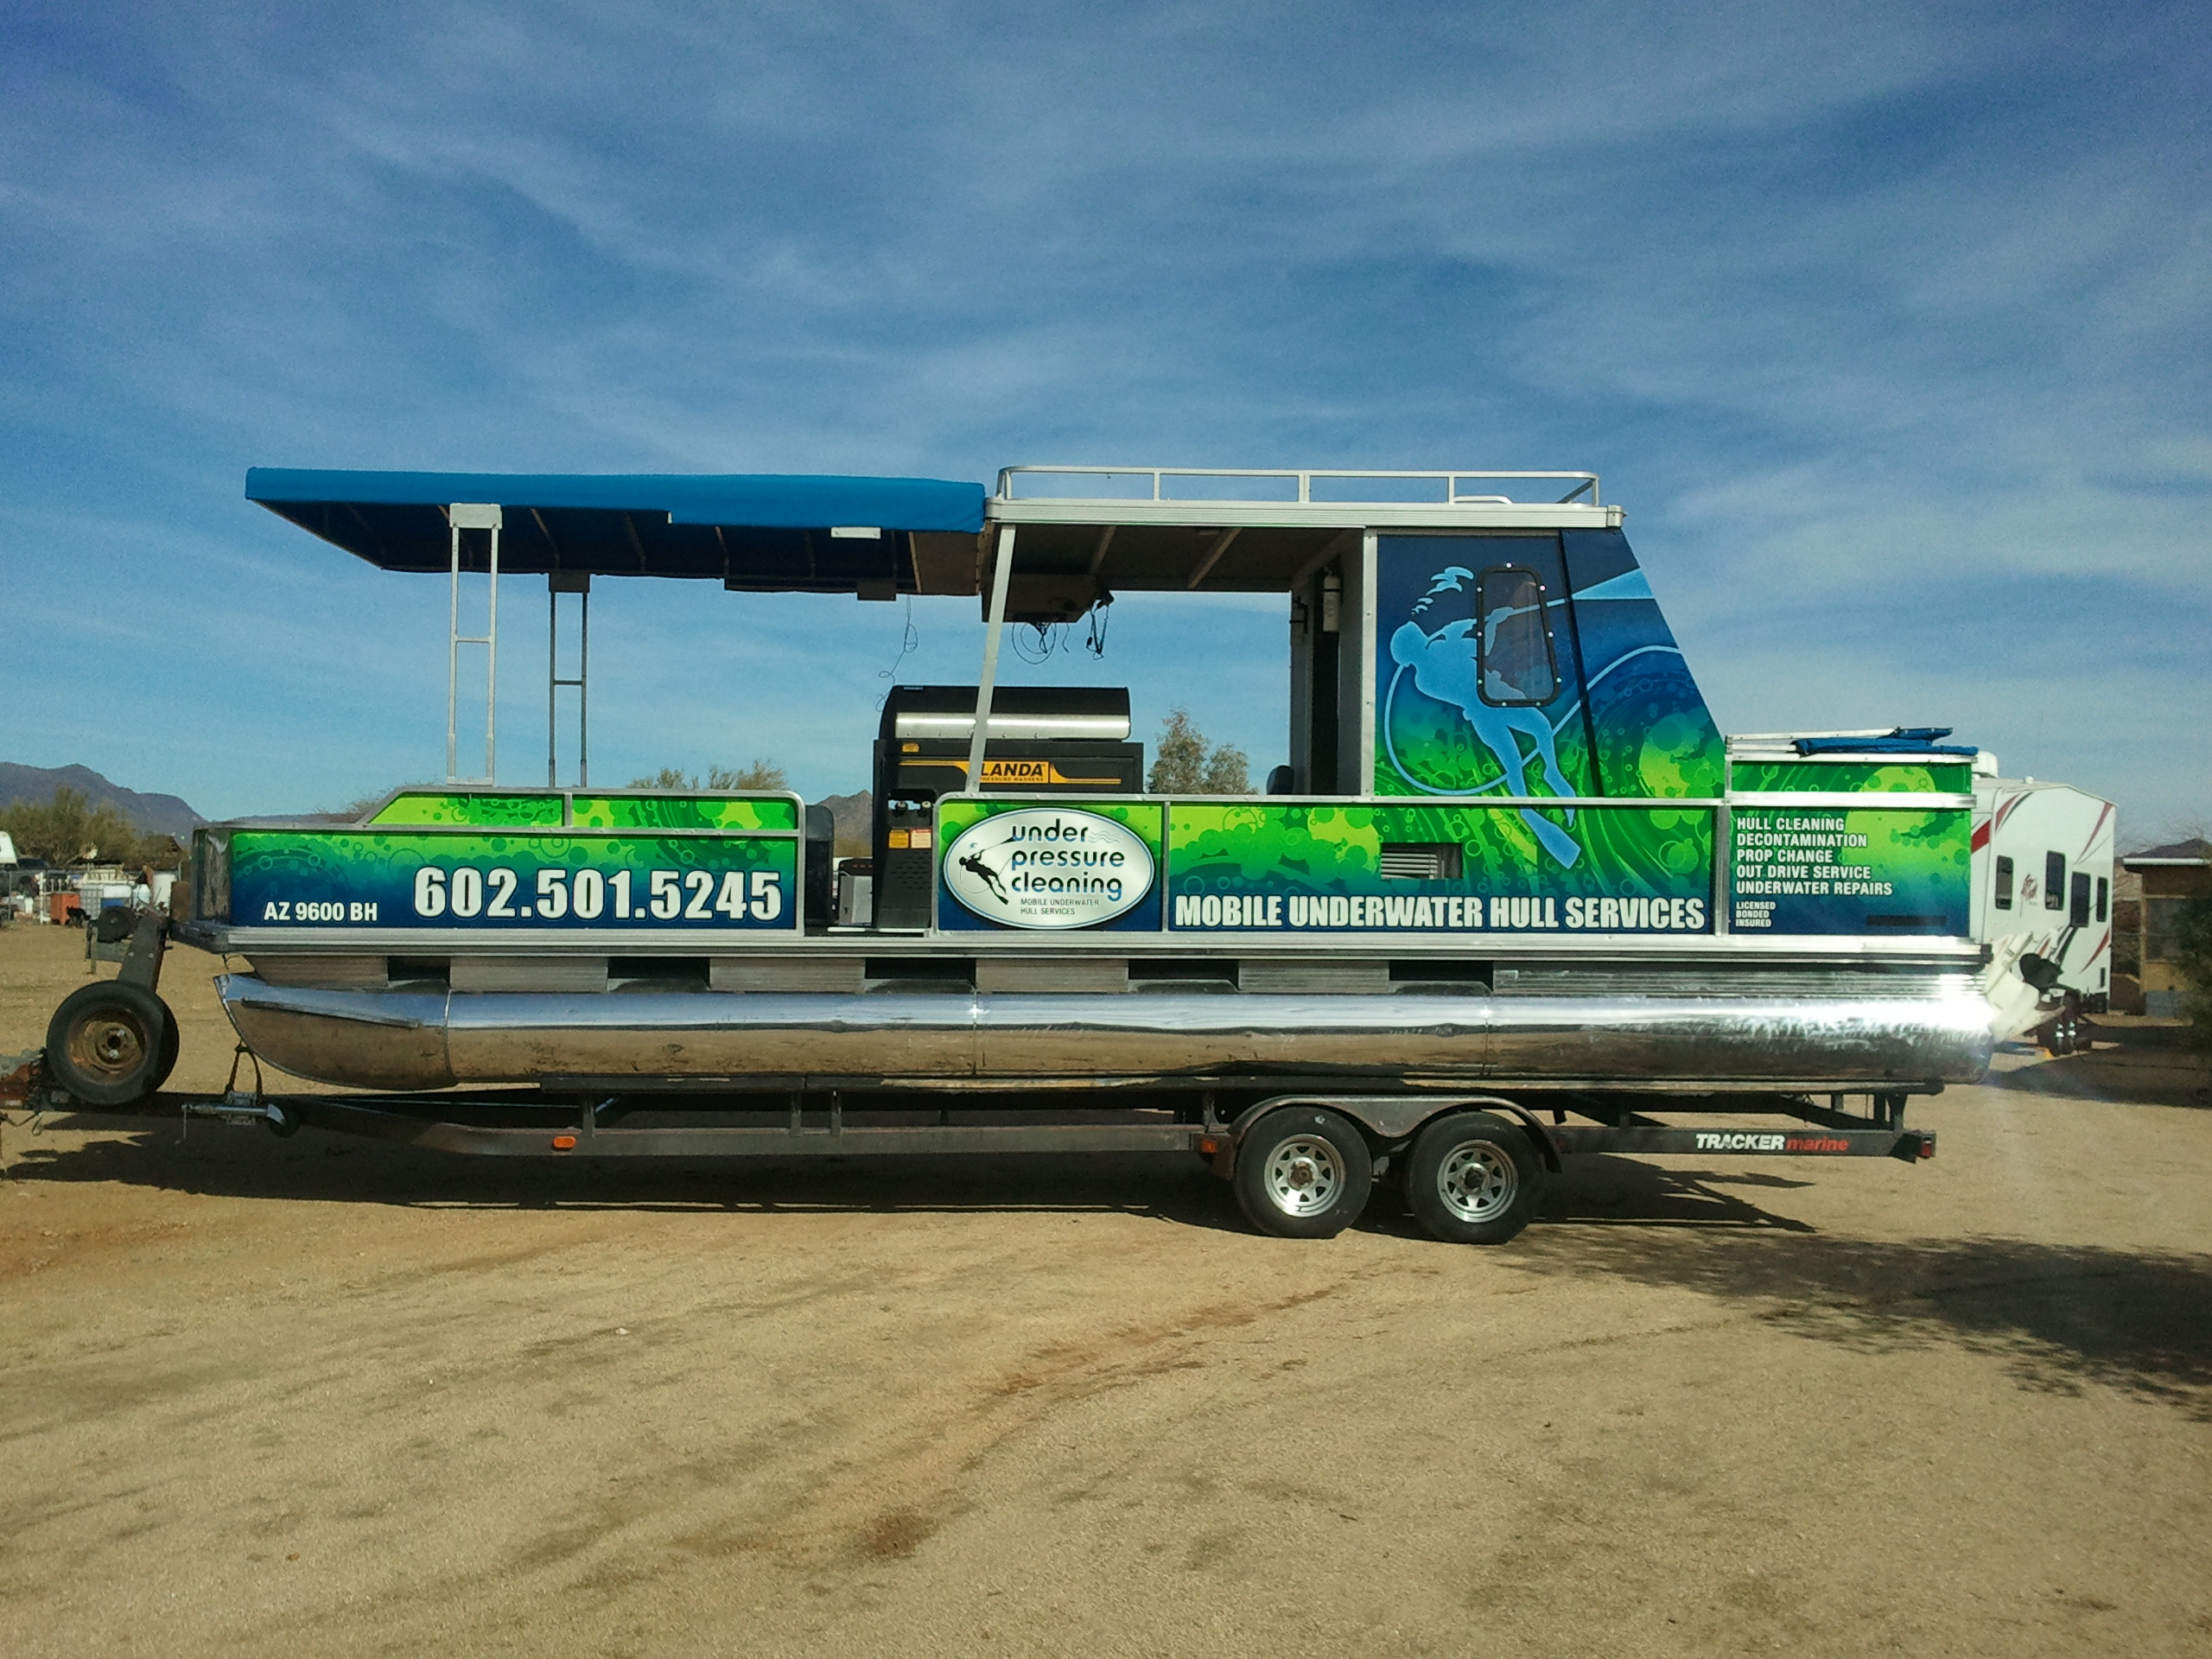 fasttrac designs vehicle wraps screen printing graphic vinyl graphics for pontoon boats - Boat Graphics Designs Ideas